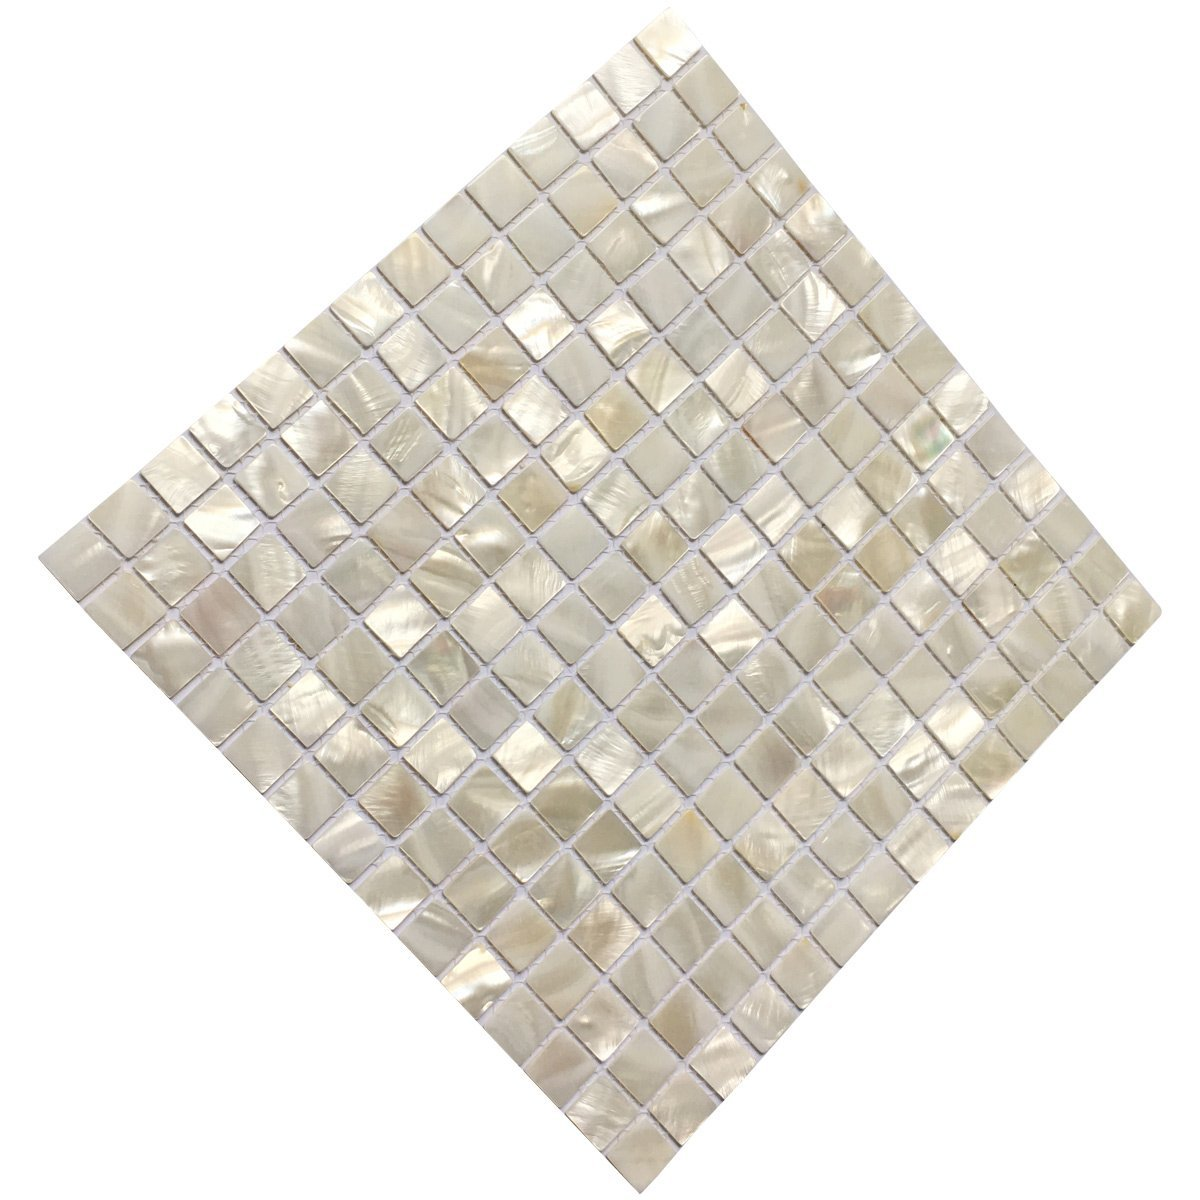 "Art3d Oyster Mother of Pearl Square Shell Mosaic Kitchen Tiles for Kitchen Backsplashes, Bathroom Walls, Spas, Pools 12"" X 12"" Pack of 6"